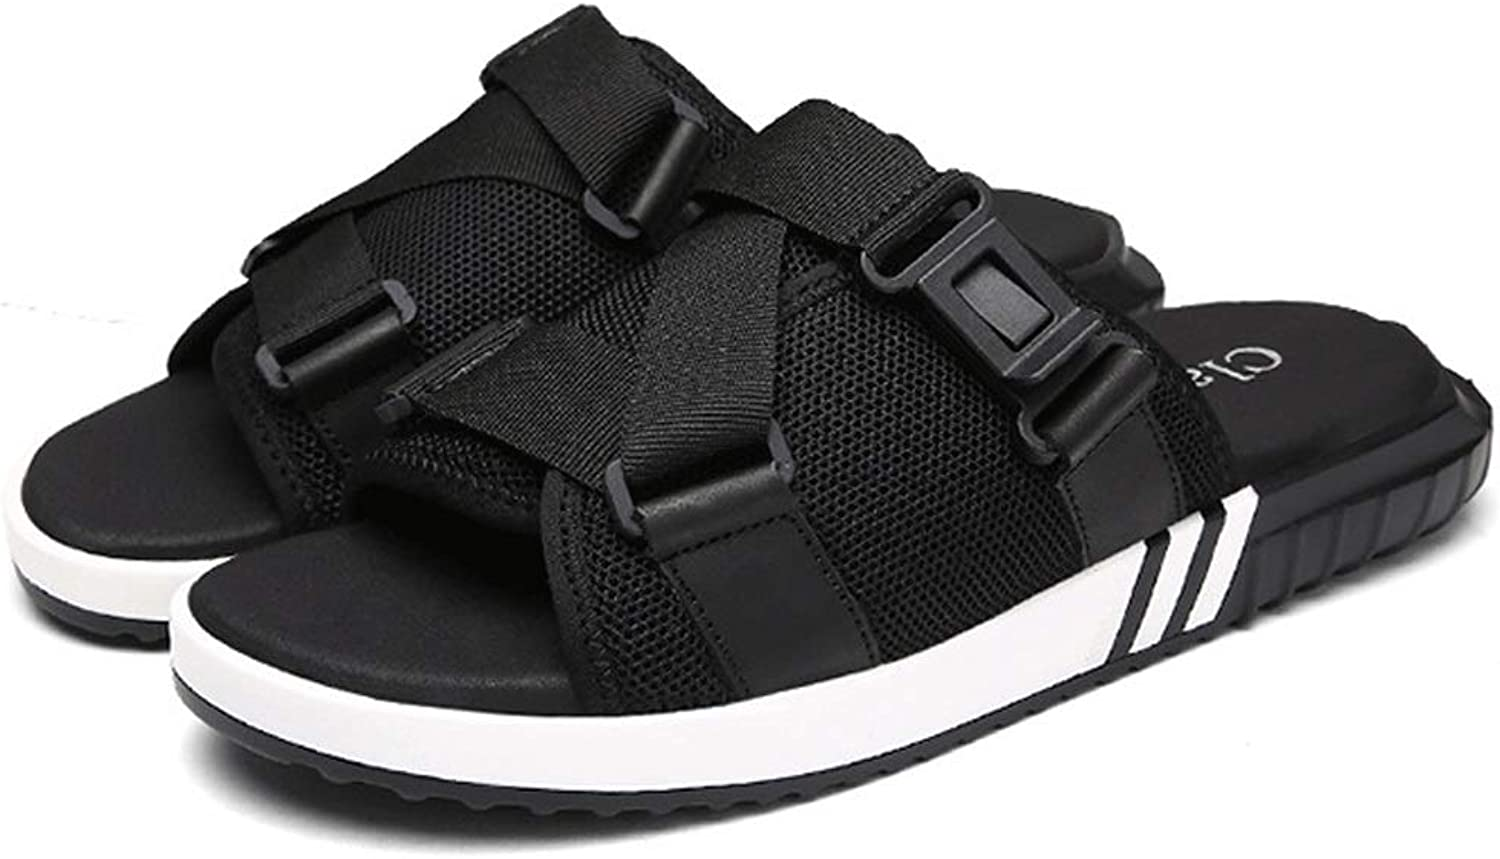 LiXiZhong Men's Sports Sandals Casual Breathable Sandals and Slippers Beach Walking Slippers (color   Black, Size   10.5 UK)